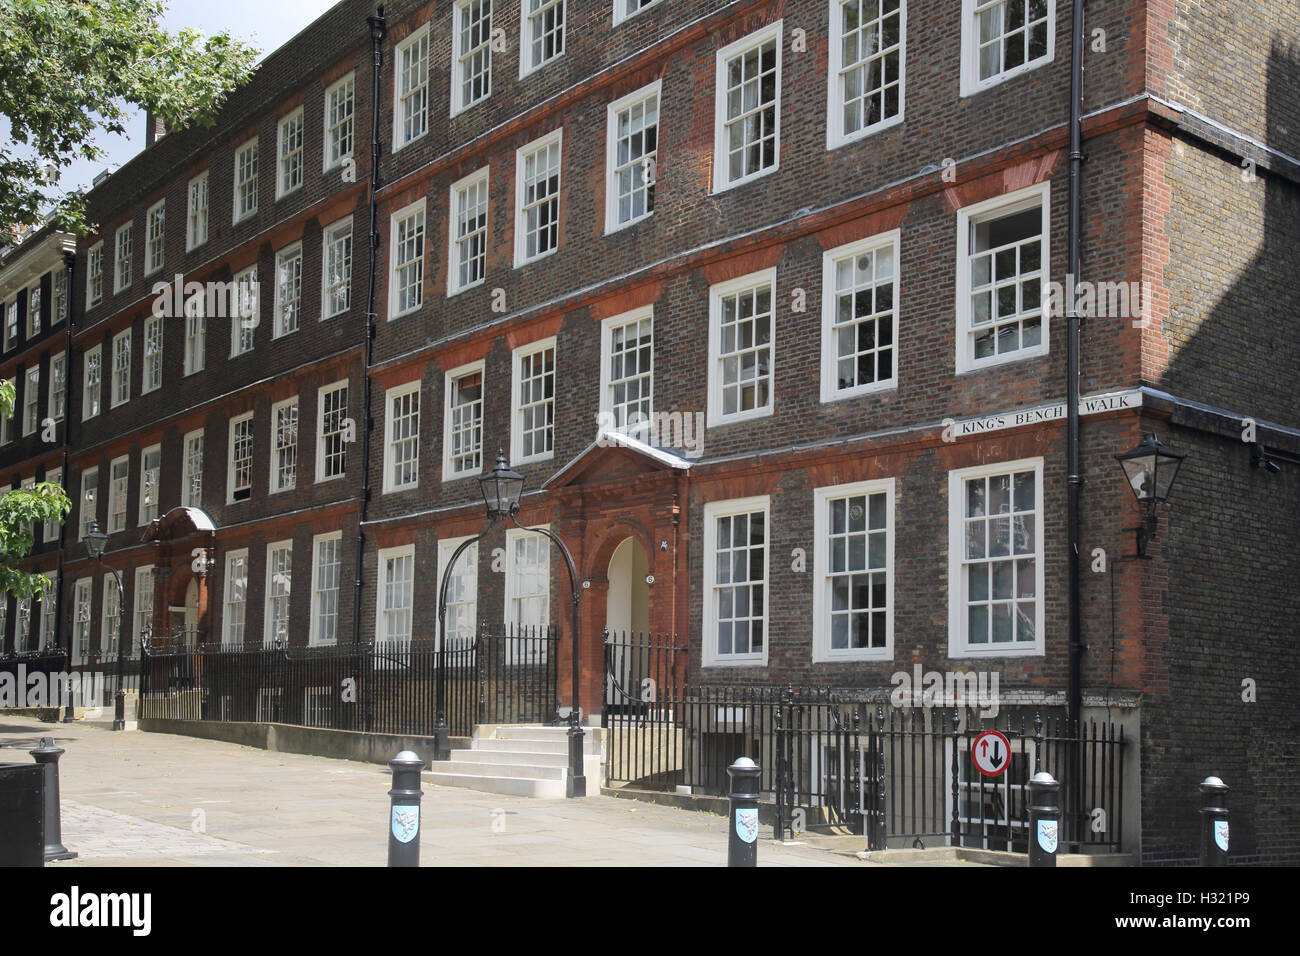 kings bench walk inns of court inner and middle temple london - Stock Image